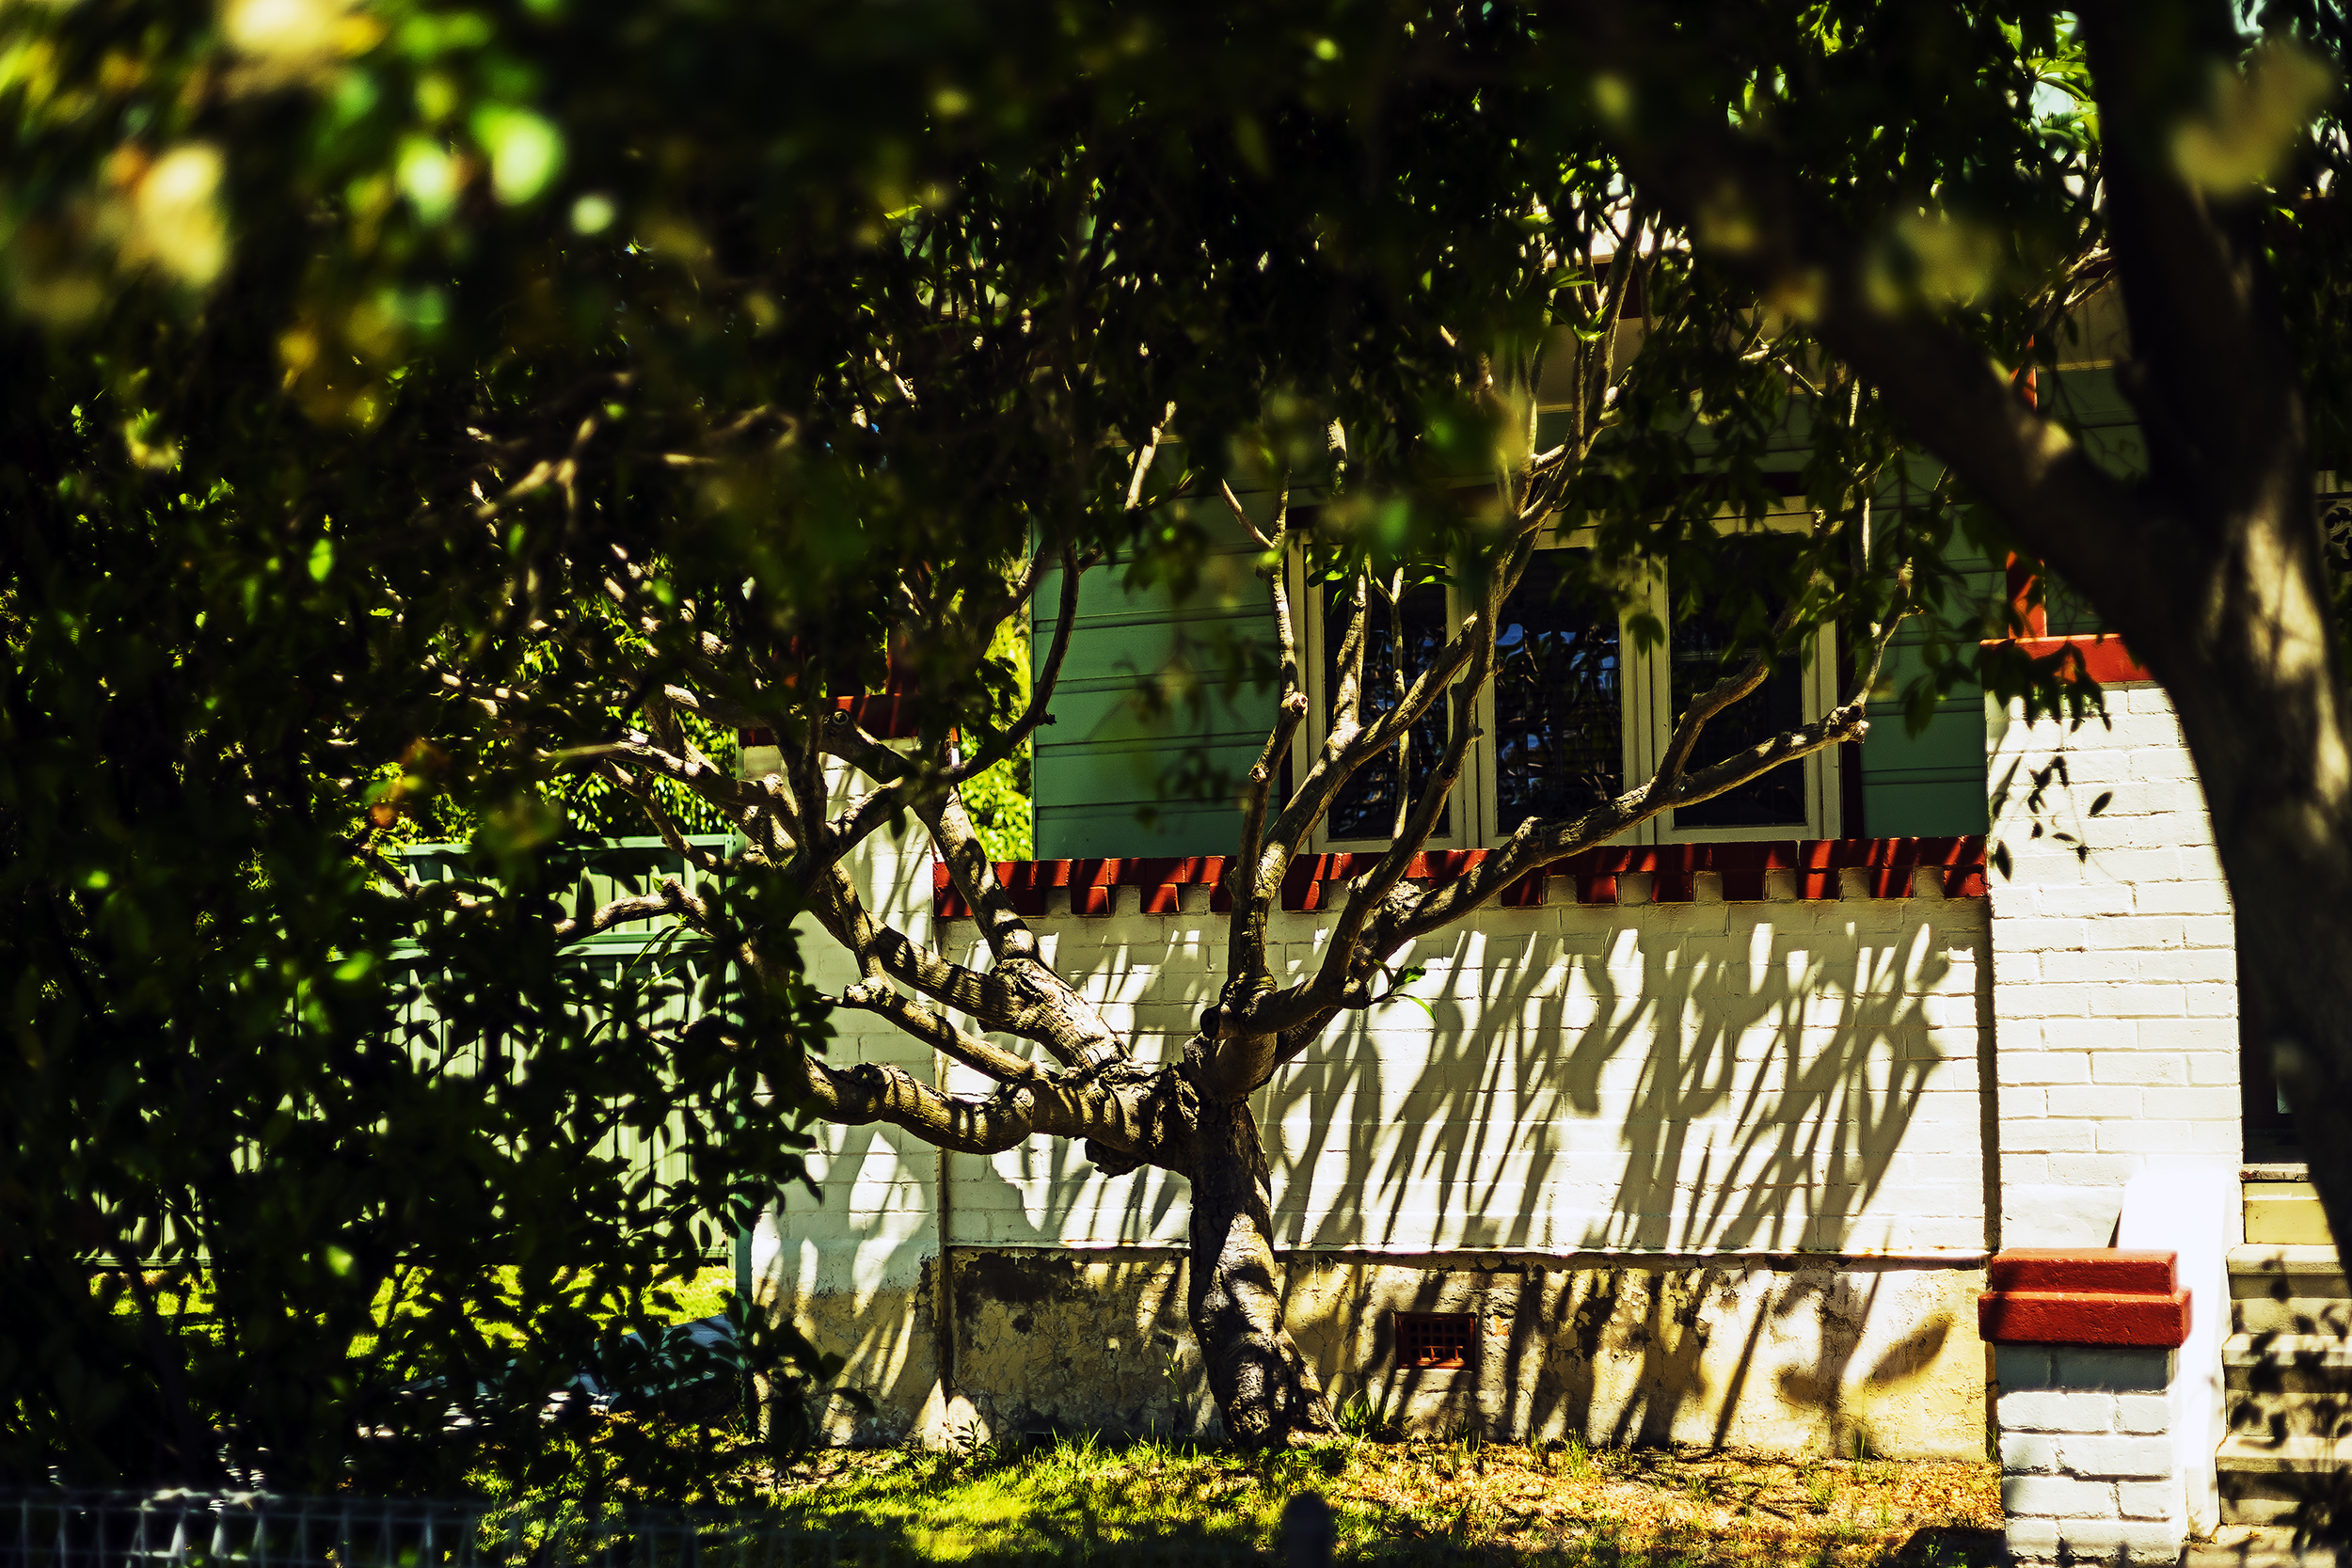 005_didi-s_gilson_australian_street_photography_kurrikurri_tree_house-sunlight_shadows_2018.jpg